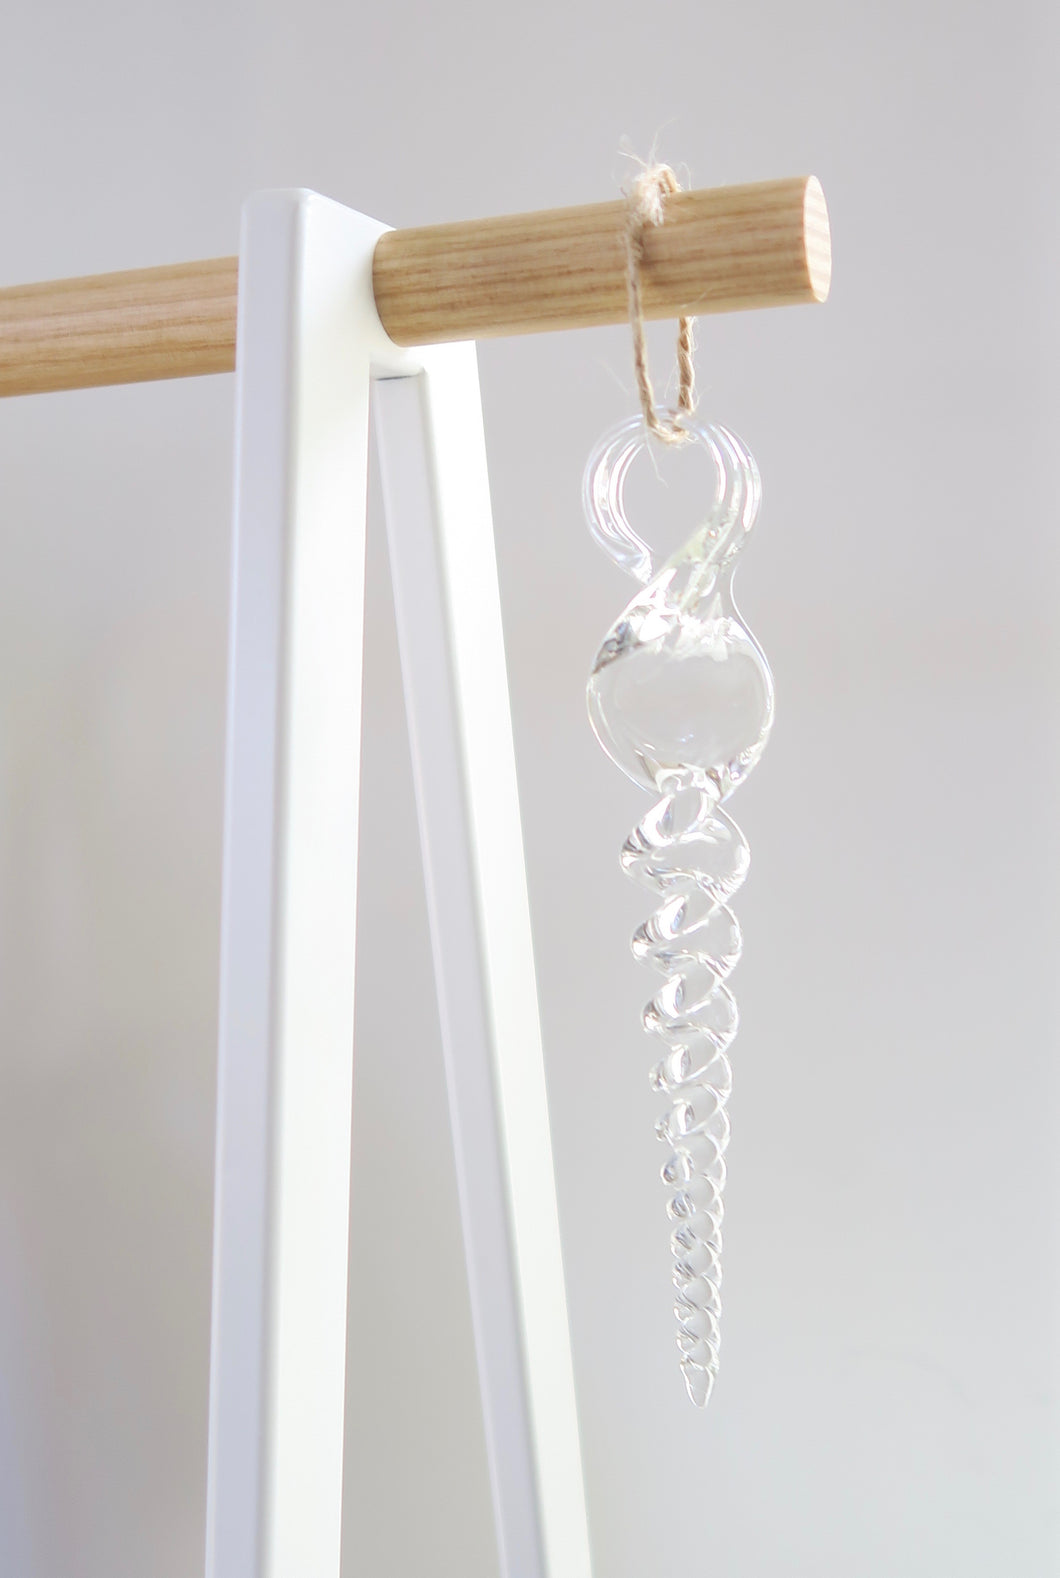 glass icicle hanging on a dowel